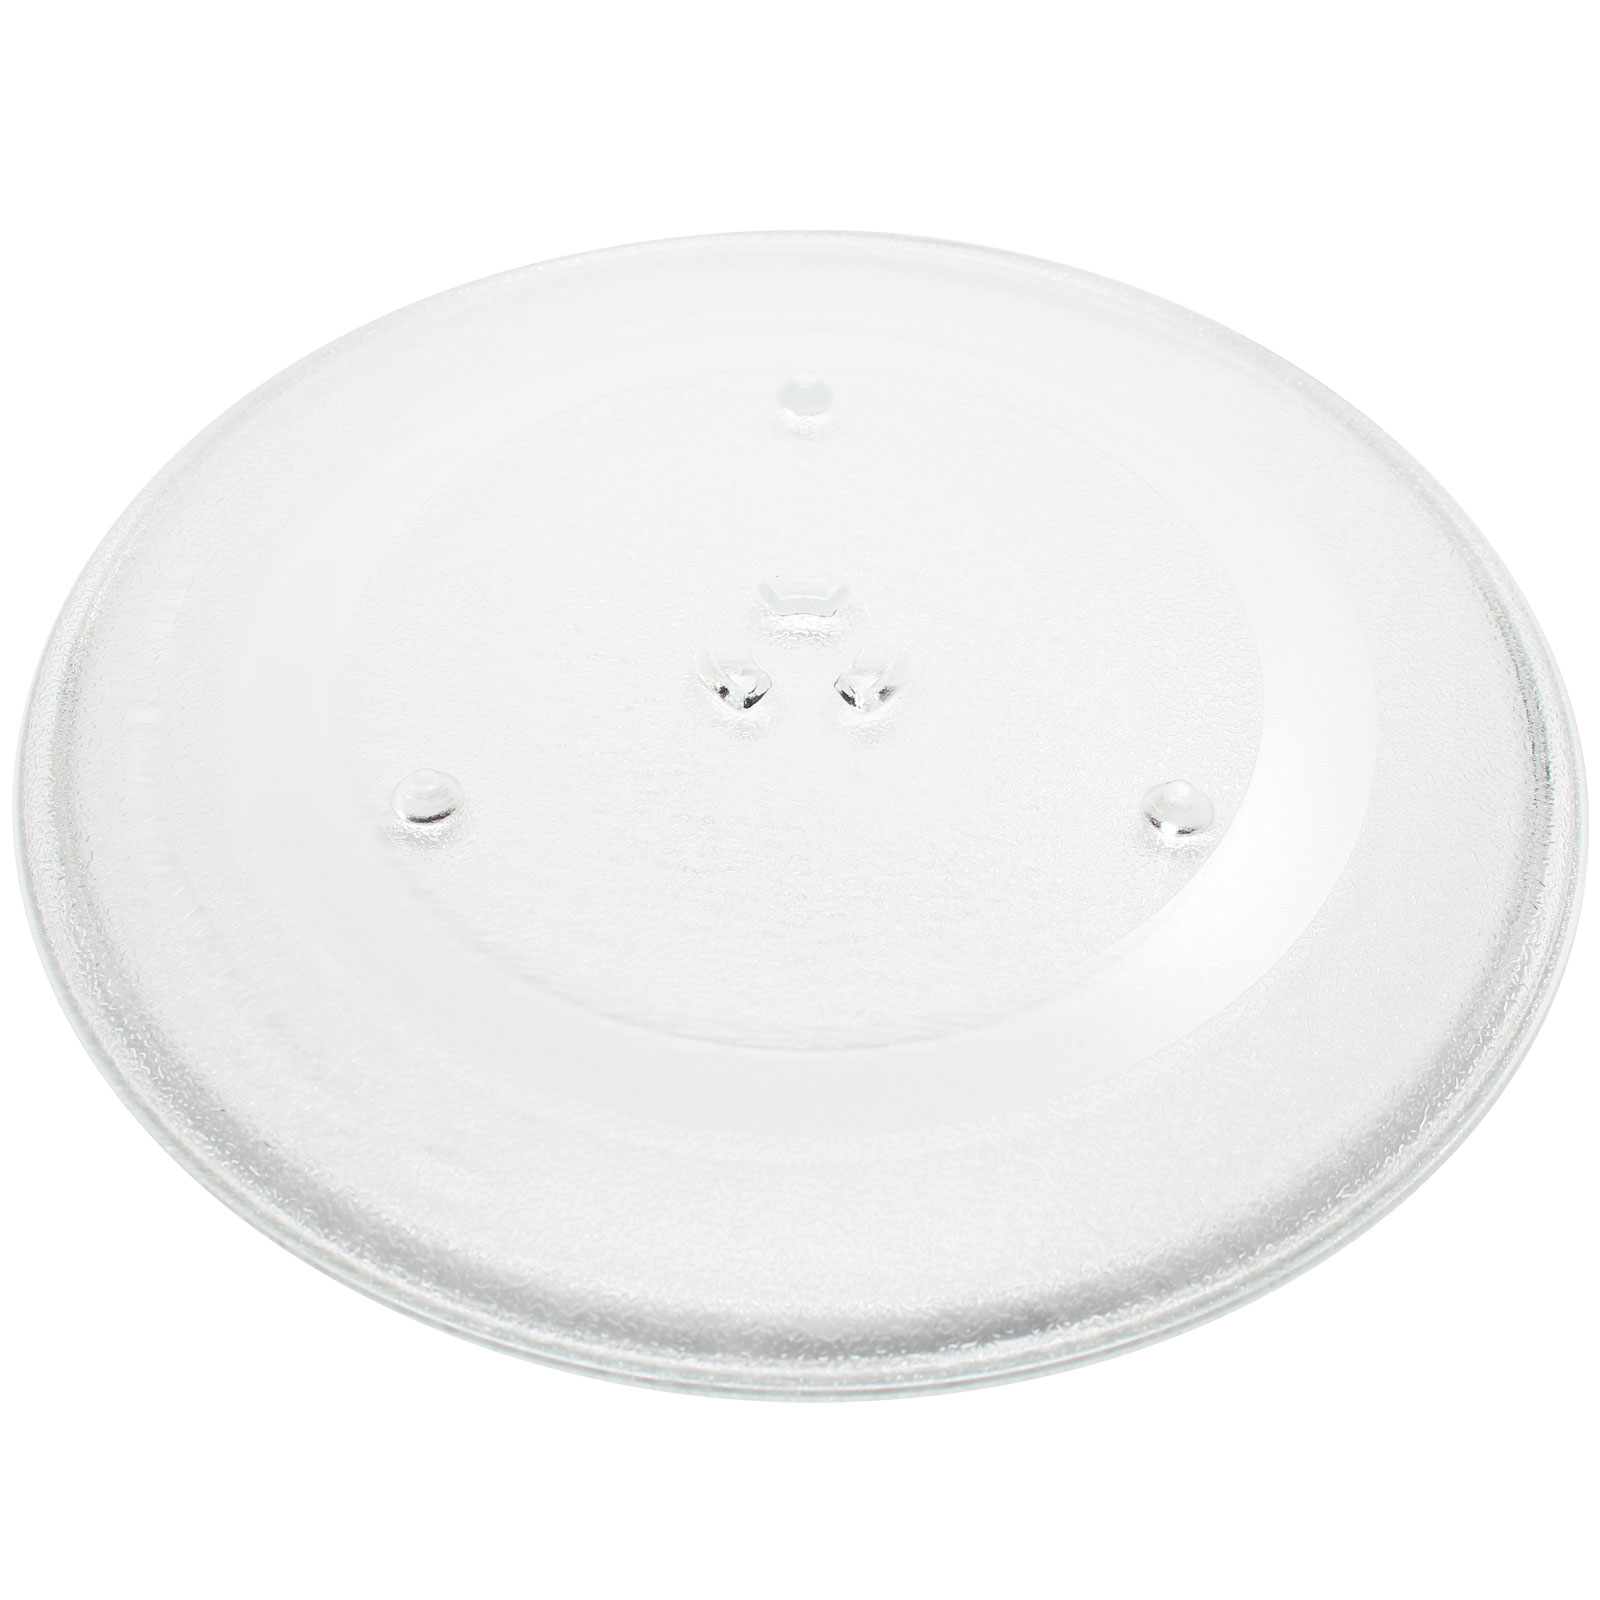 "Replacement Samsung MR6698WB Microwave Glass Plate - Compatible Samsung DE74-20002 Microwave Glass Turntable Tray - 14 1/8"" (359 mm) - image 3 of 4"